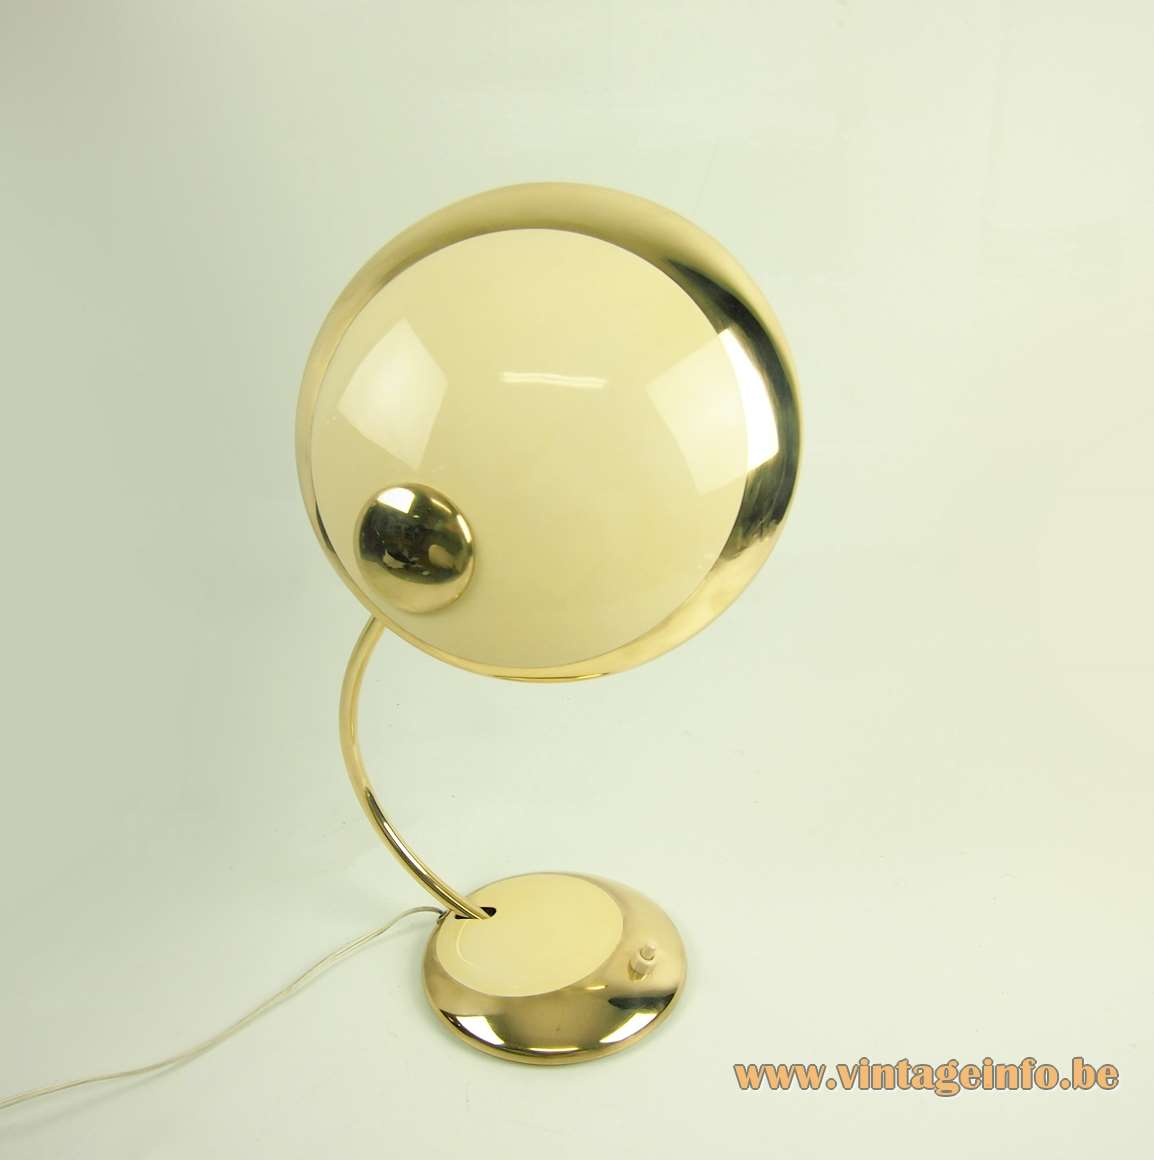 Helo Leuchten brass desk lamp curved rod round mushroom lampshade & base cream vanilla paint 1950s 1960s